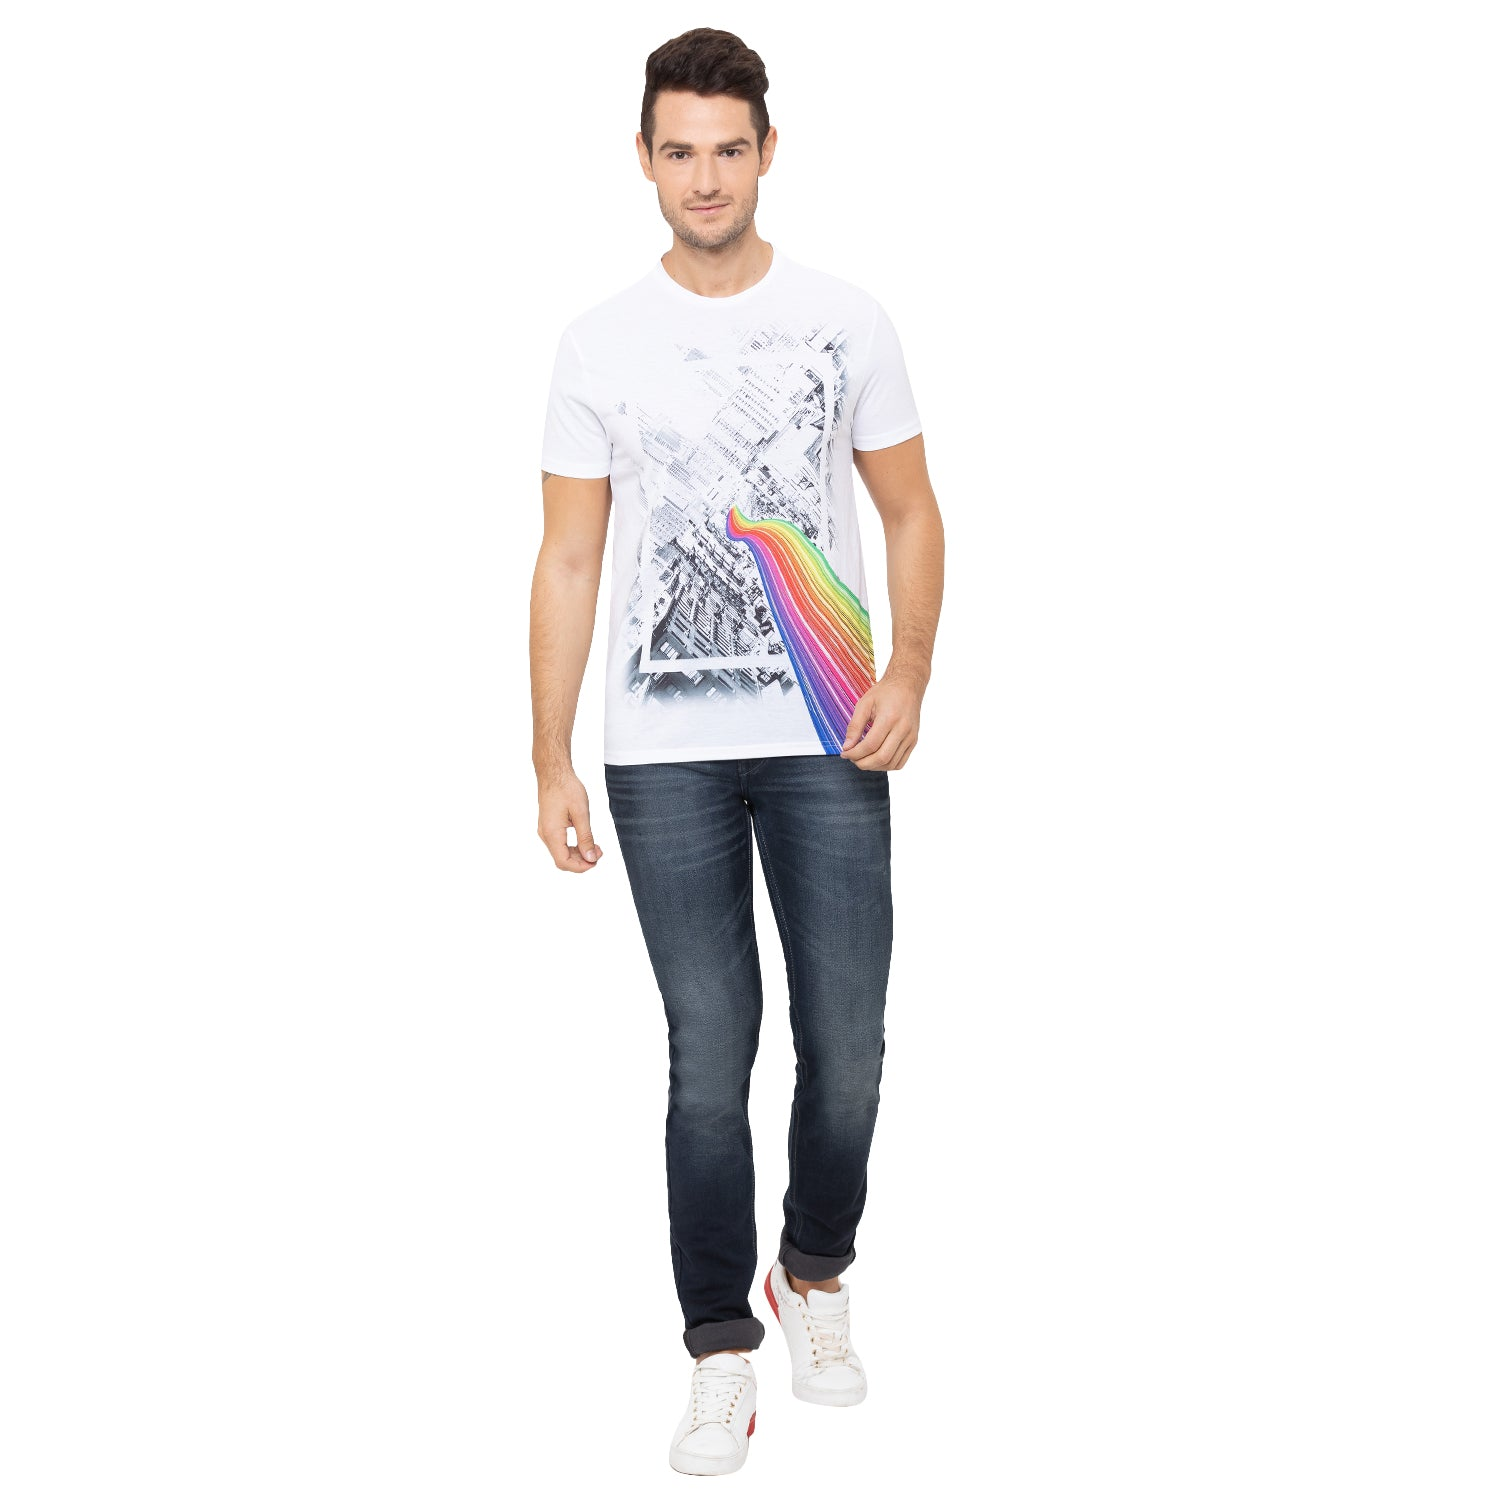 Globus White Printed T-Shirt-2